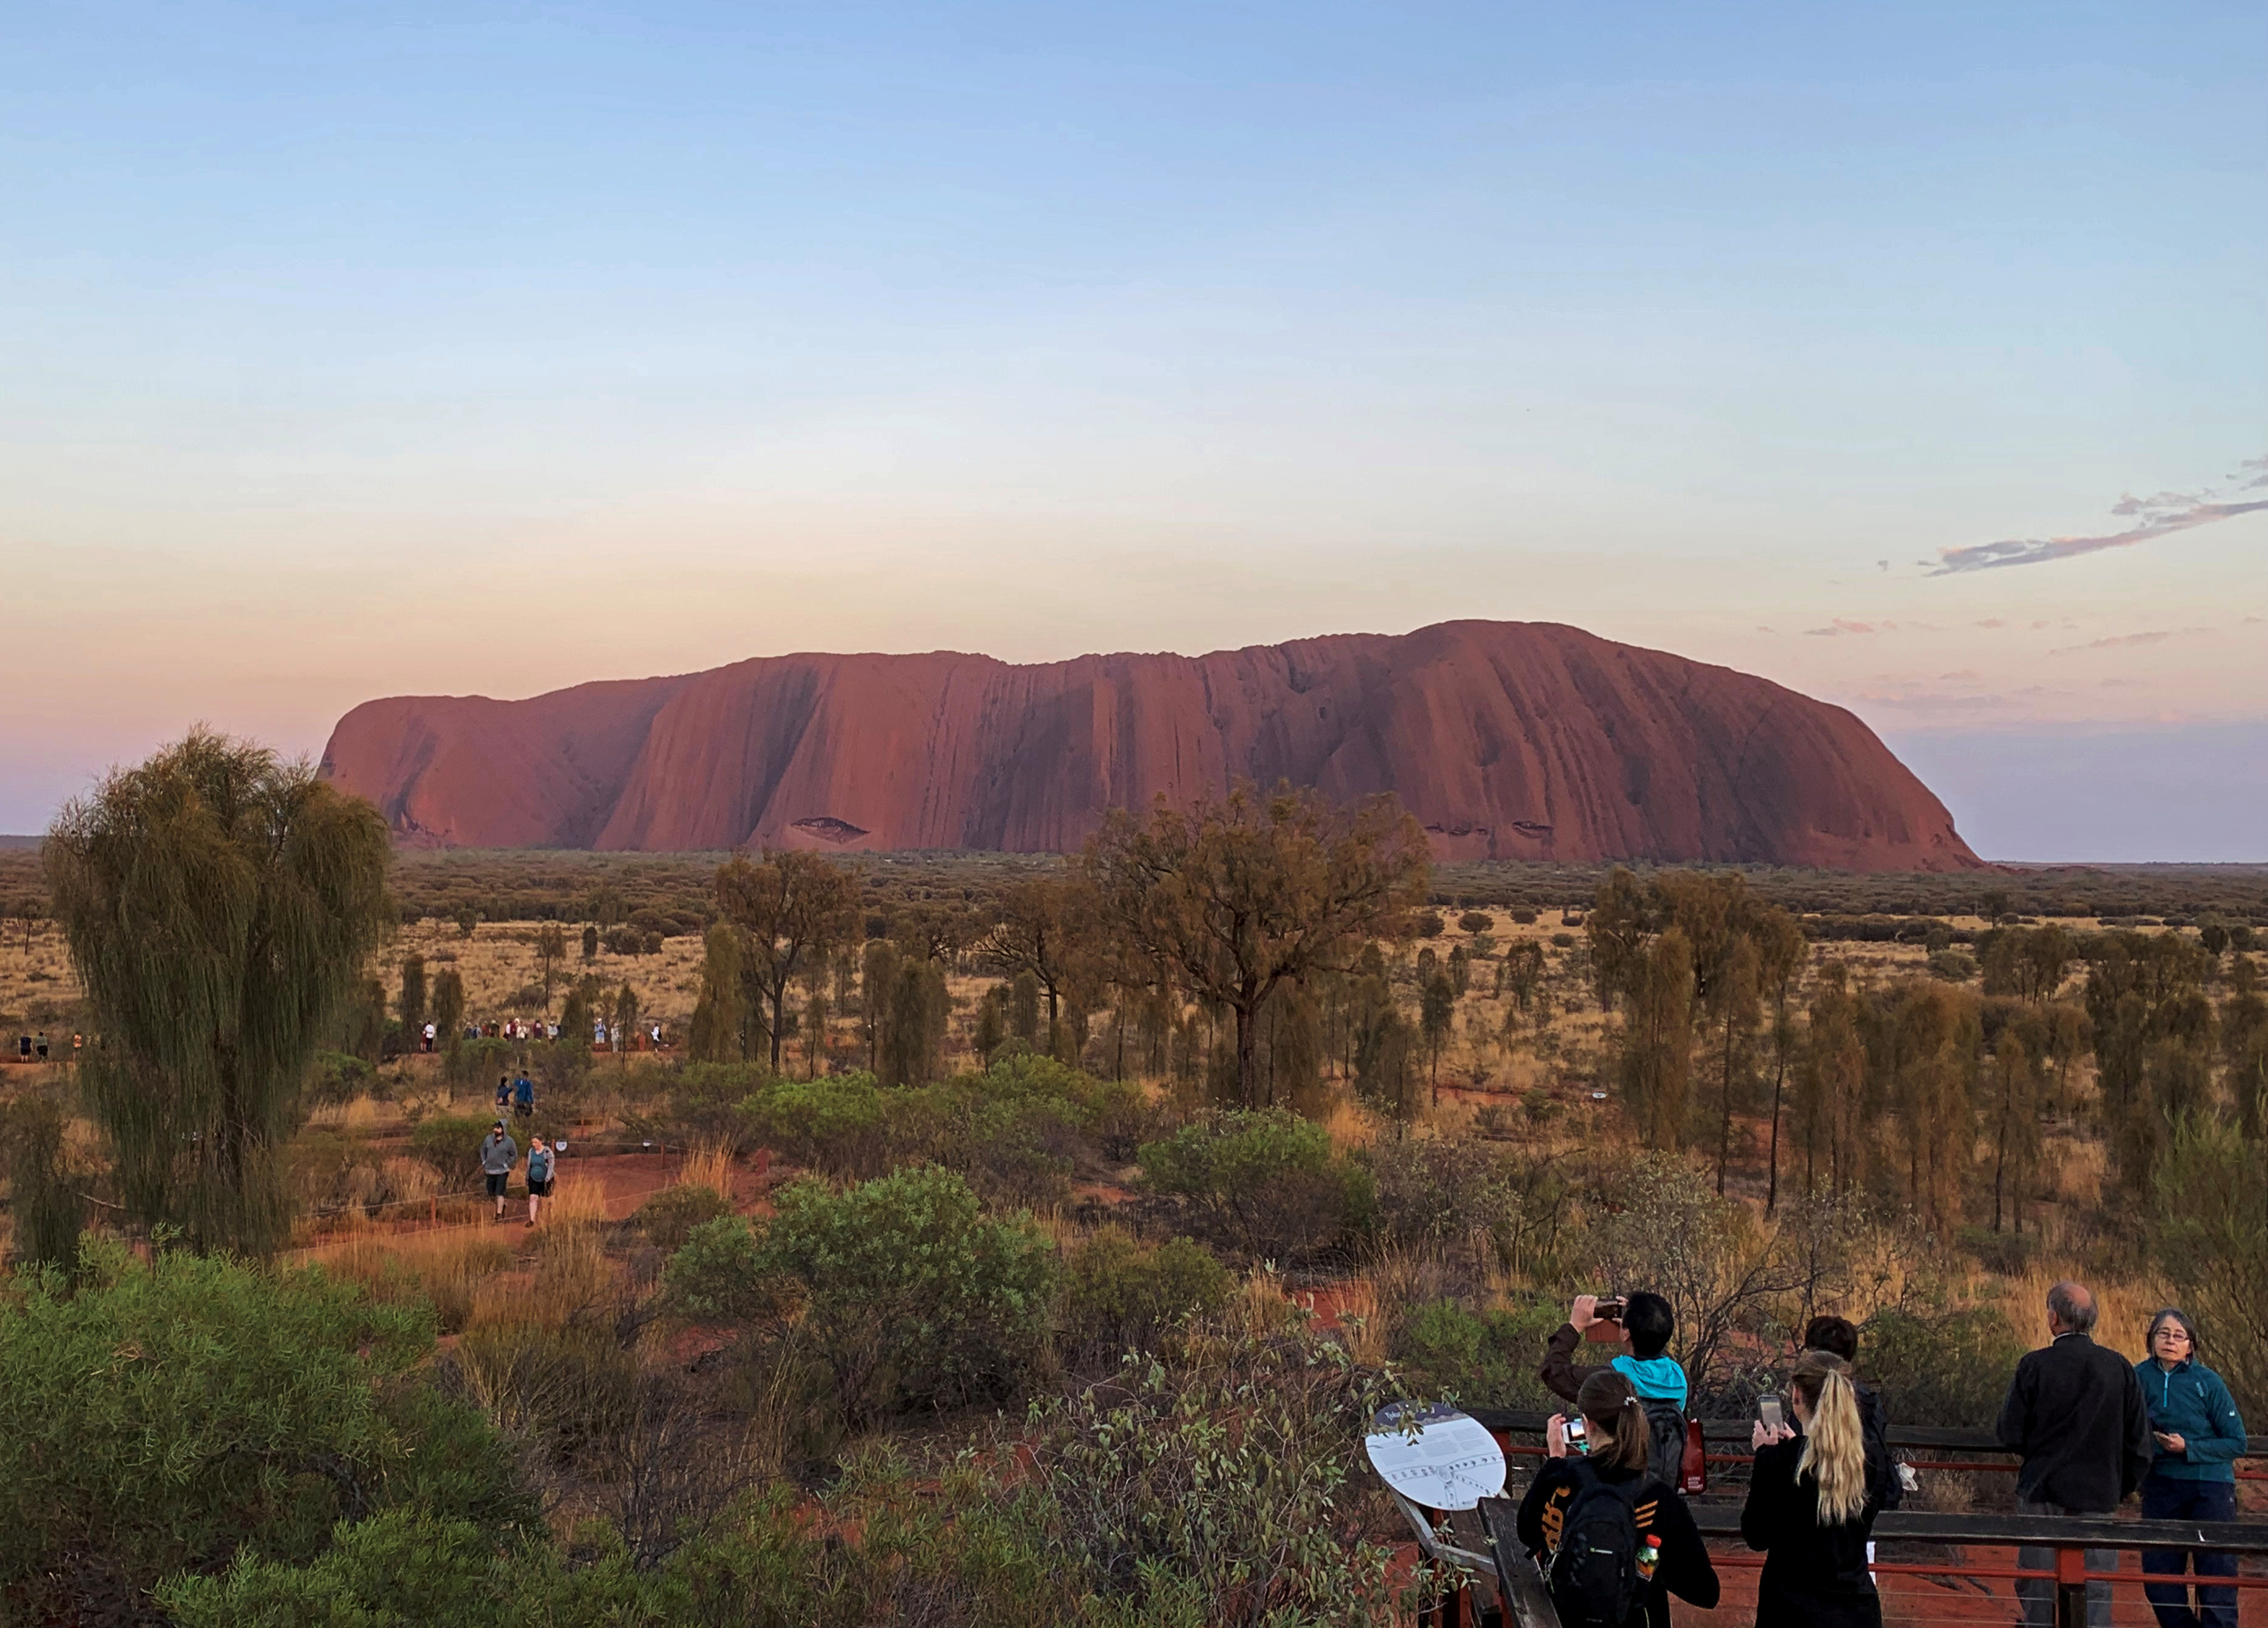 People view Uluru, formerly known as Ayers Rock, the day before a permanent ban on climbing the monolith takes effect following a decades-long fight by indigenous people to close the trek, near Yulara, Australia, October 25, 2019.  REUTERS/Stefica Bikes/File Photo - RC2O8M9GWMBB